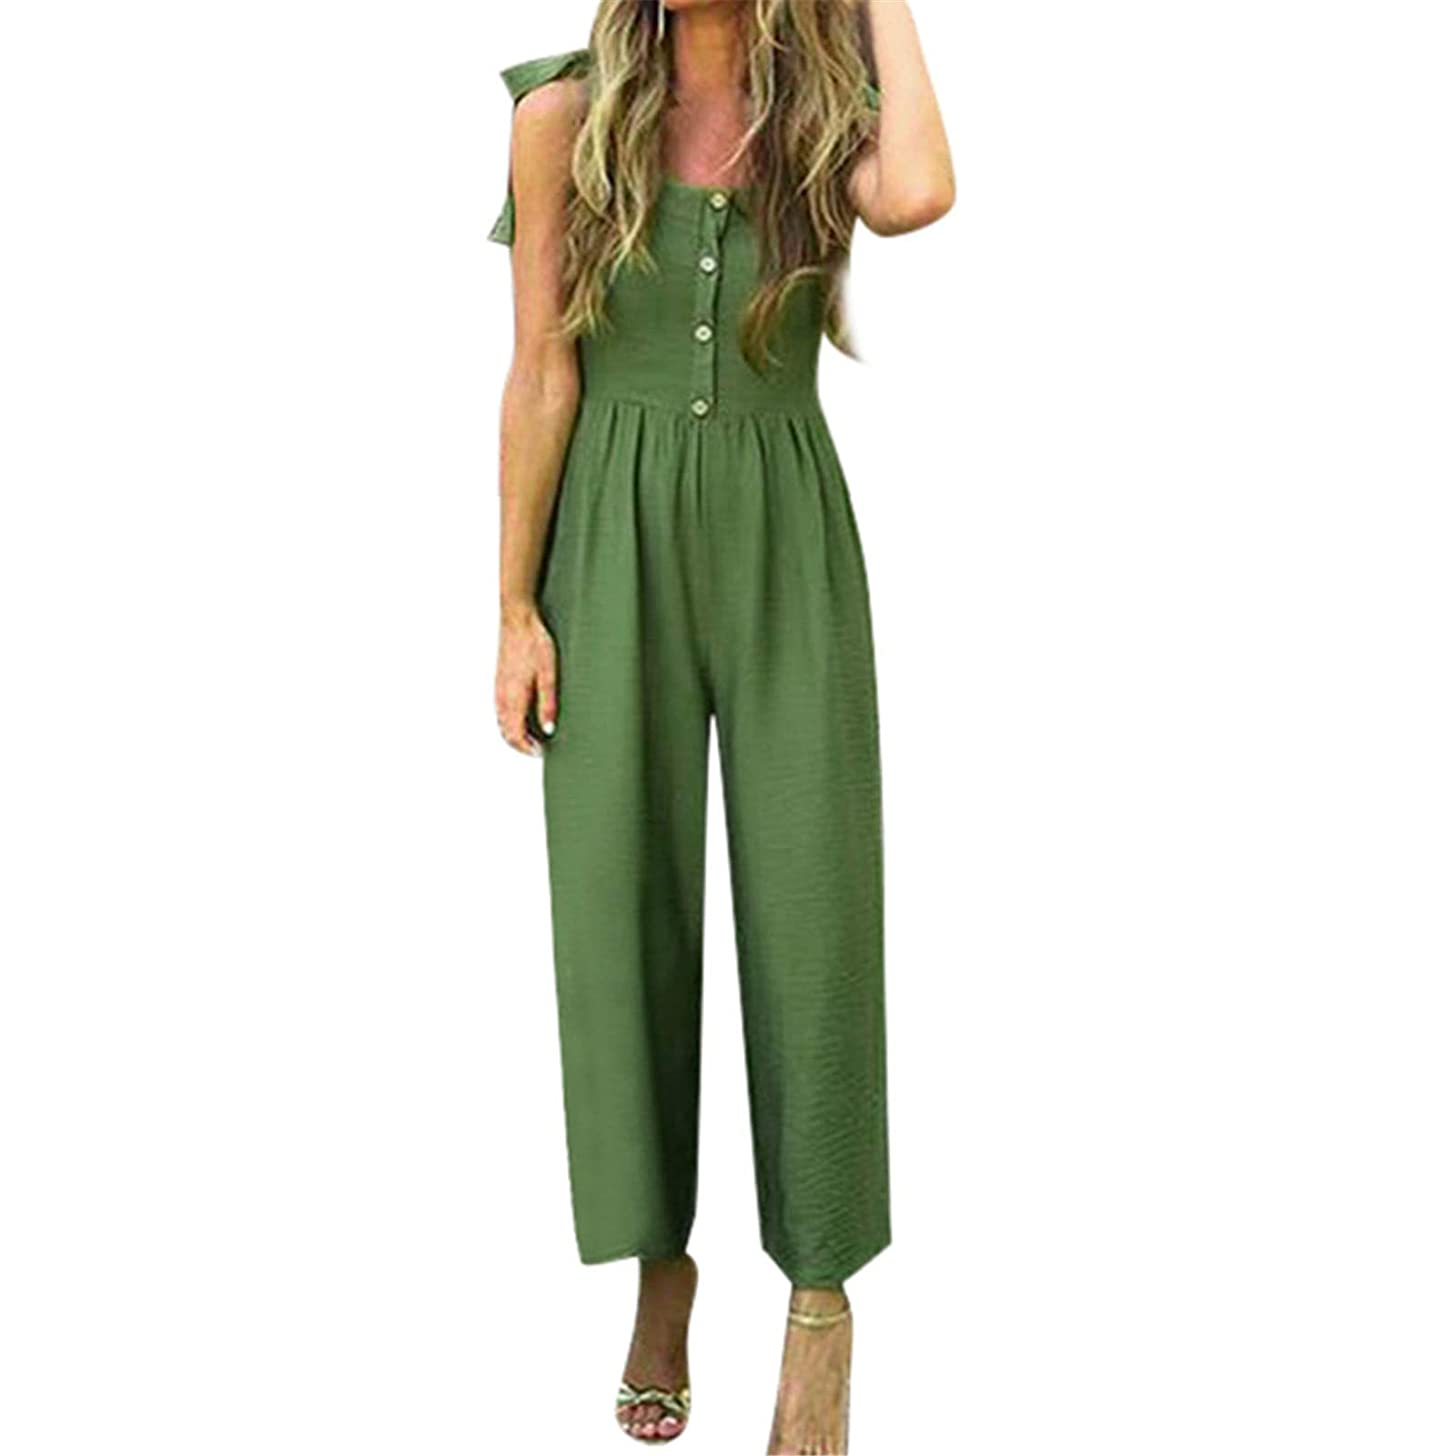 Thenxin Women Beach Jumpsuit Sleeveless Tie Knot Shoulder Strap Solid Button Wide Leg Pant Rompers